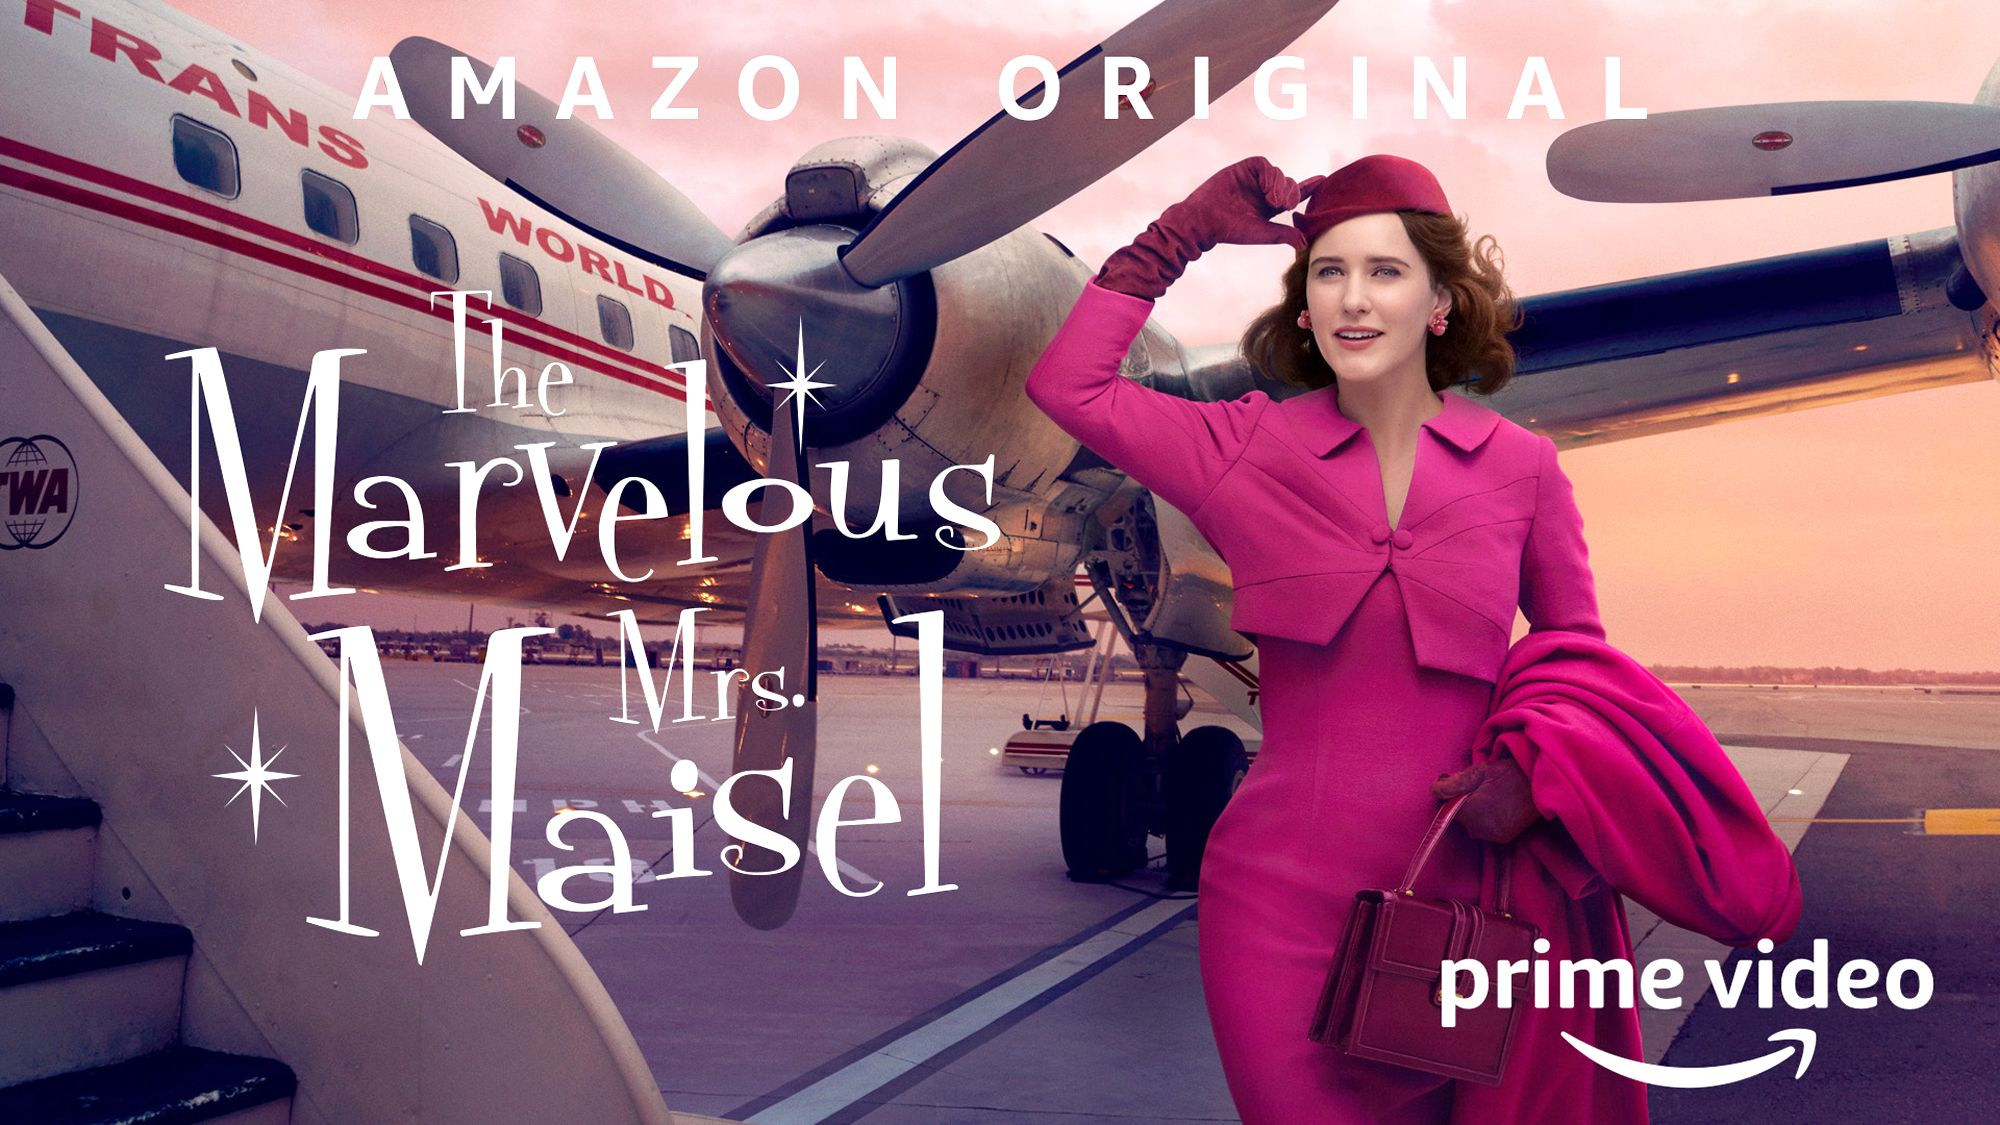 The Marvelous Mrs Maisel Hits The Long Bumpy Road To Stardom In